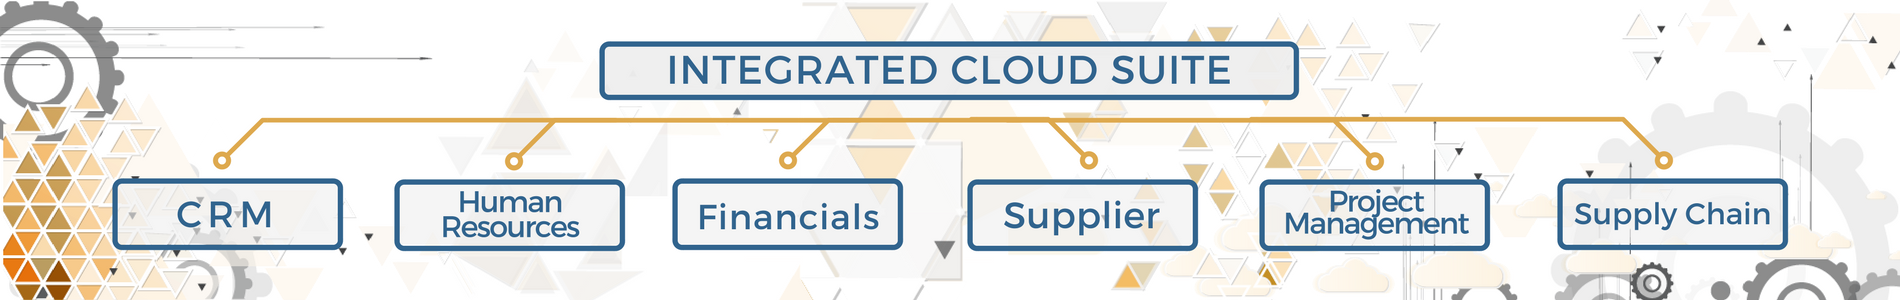 SAP Integrated Cloud Suite